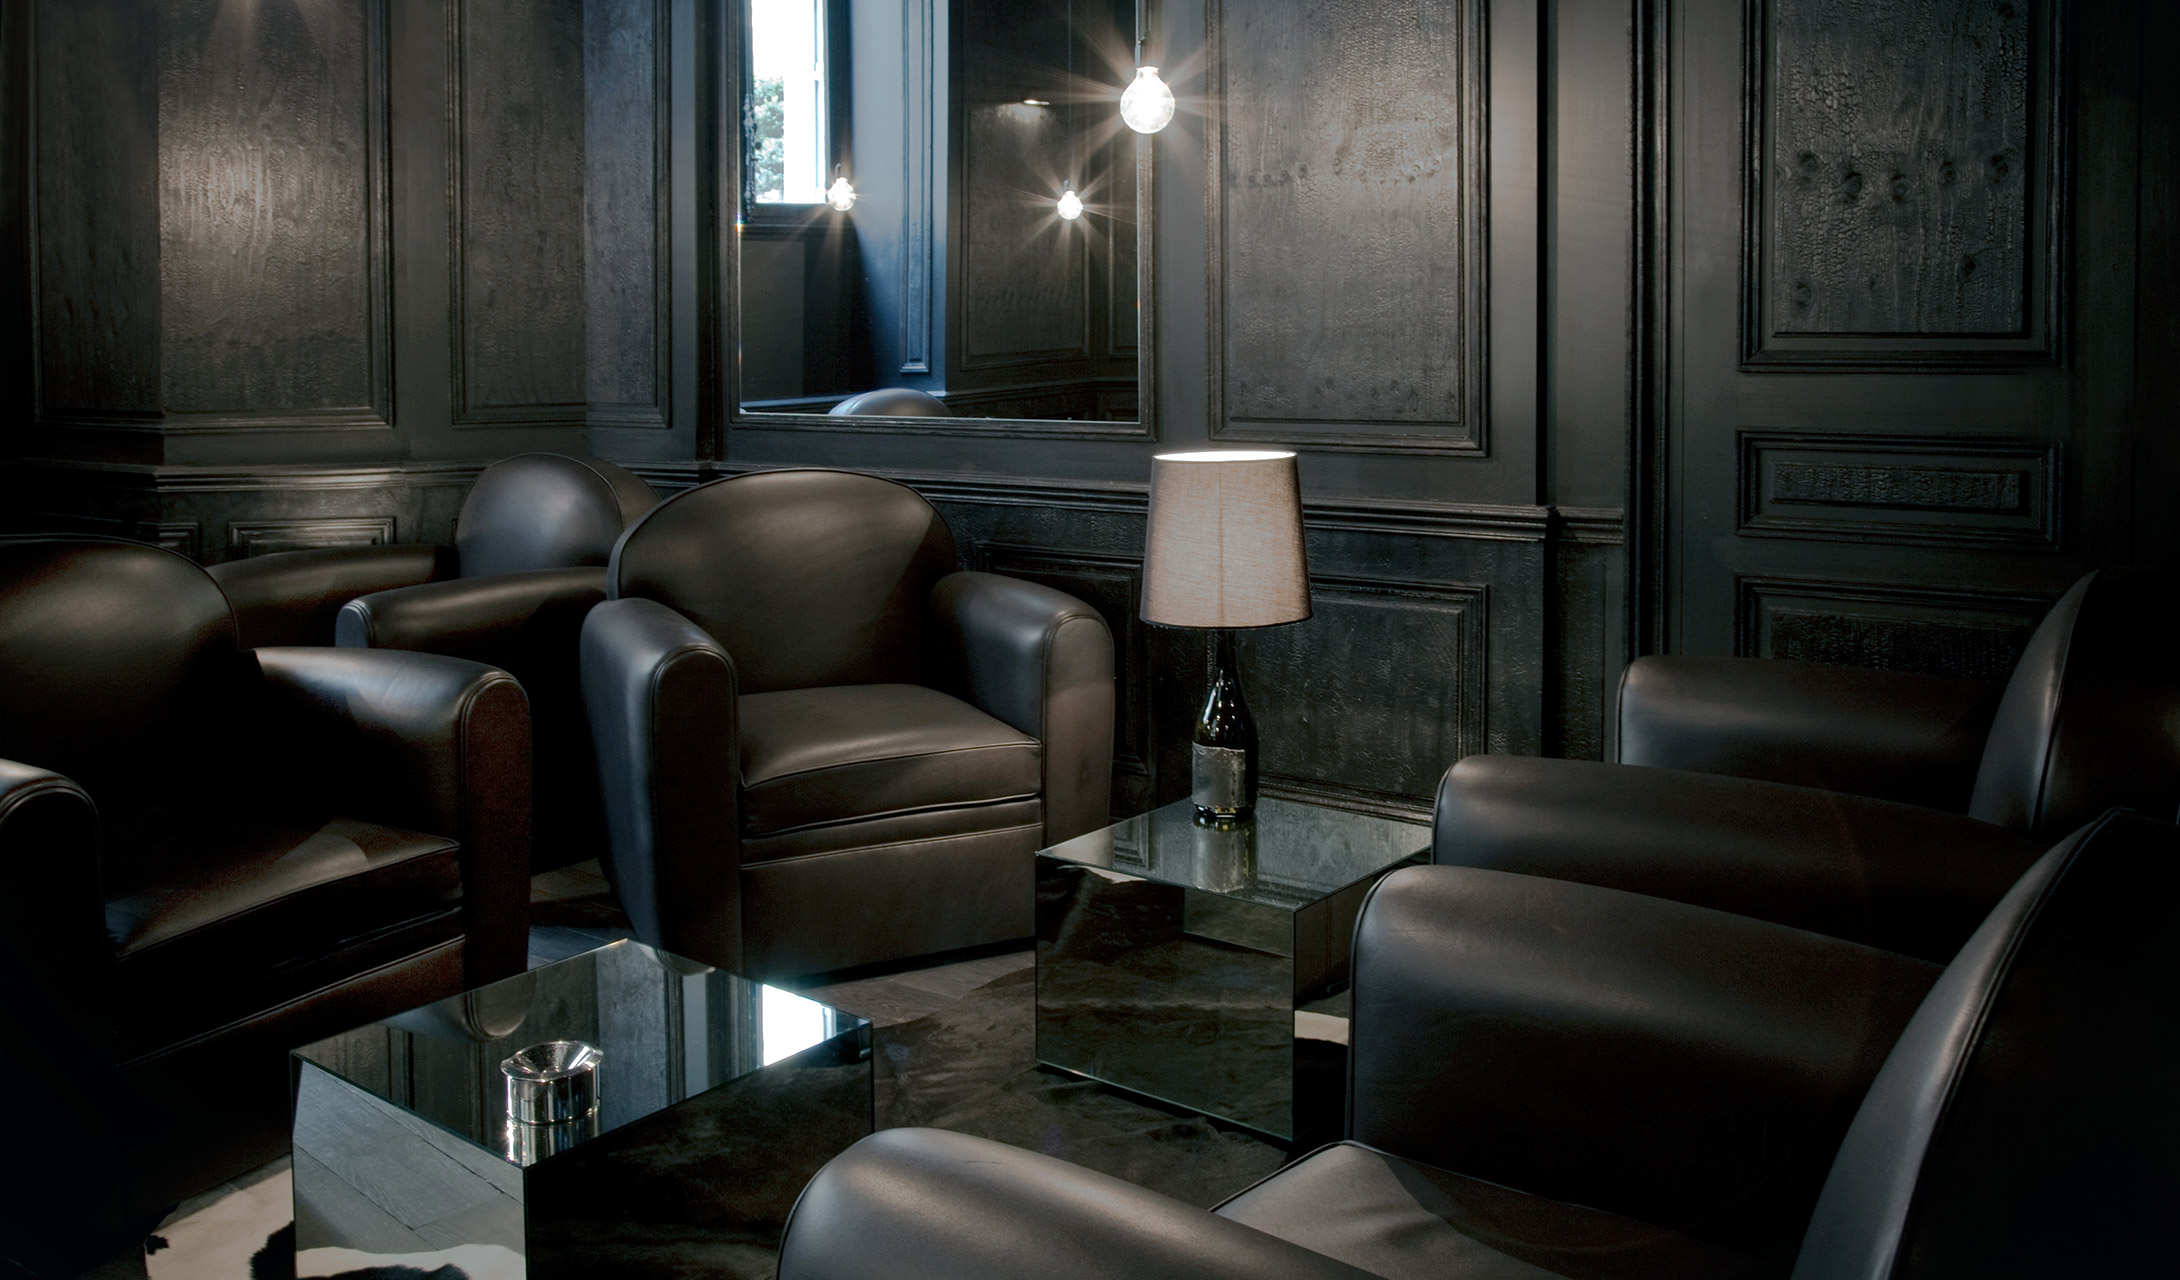 La maison champs elysees paris france design hotels for Hotel design paris 7